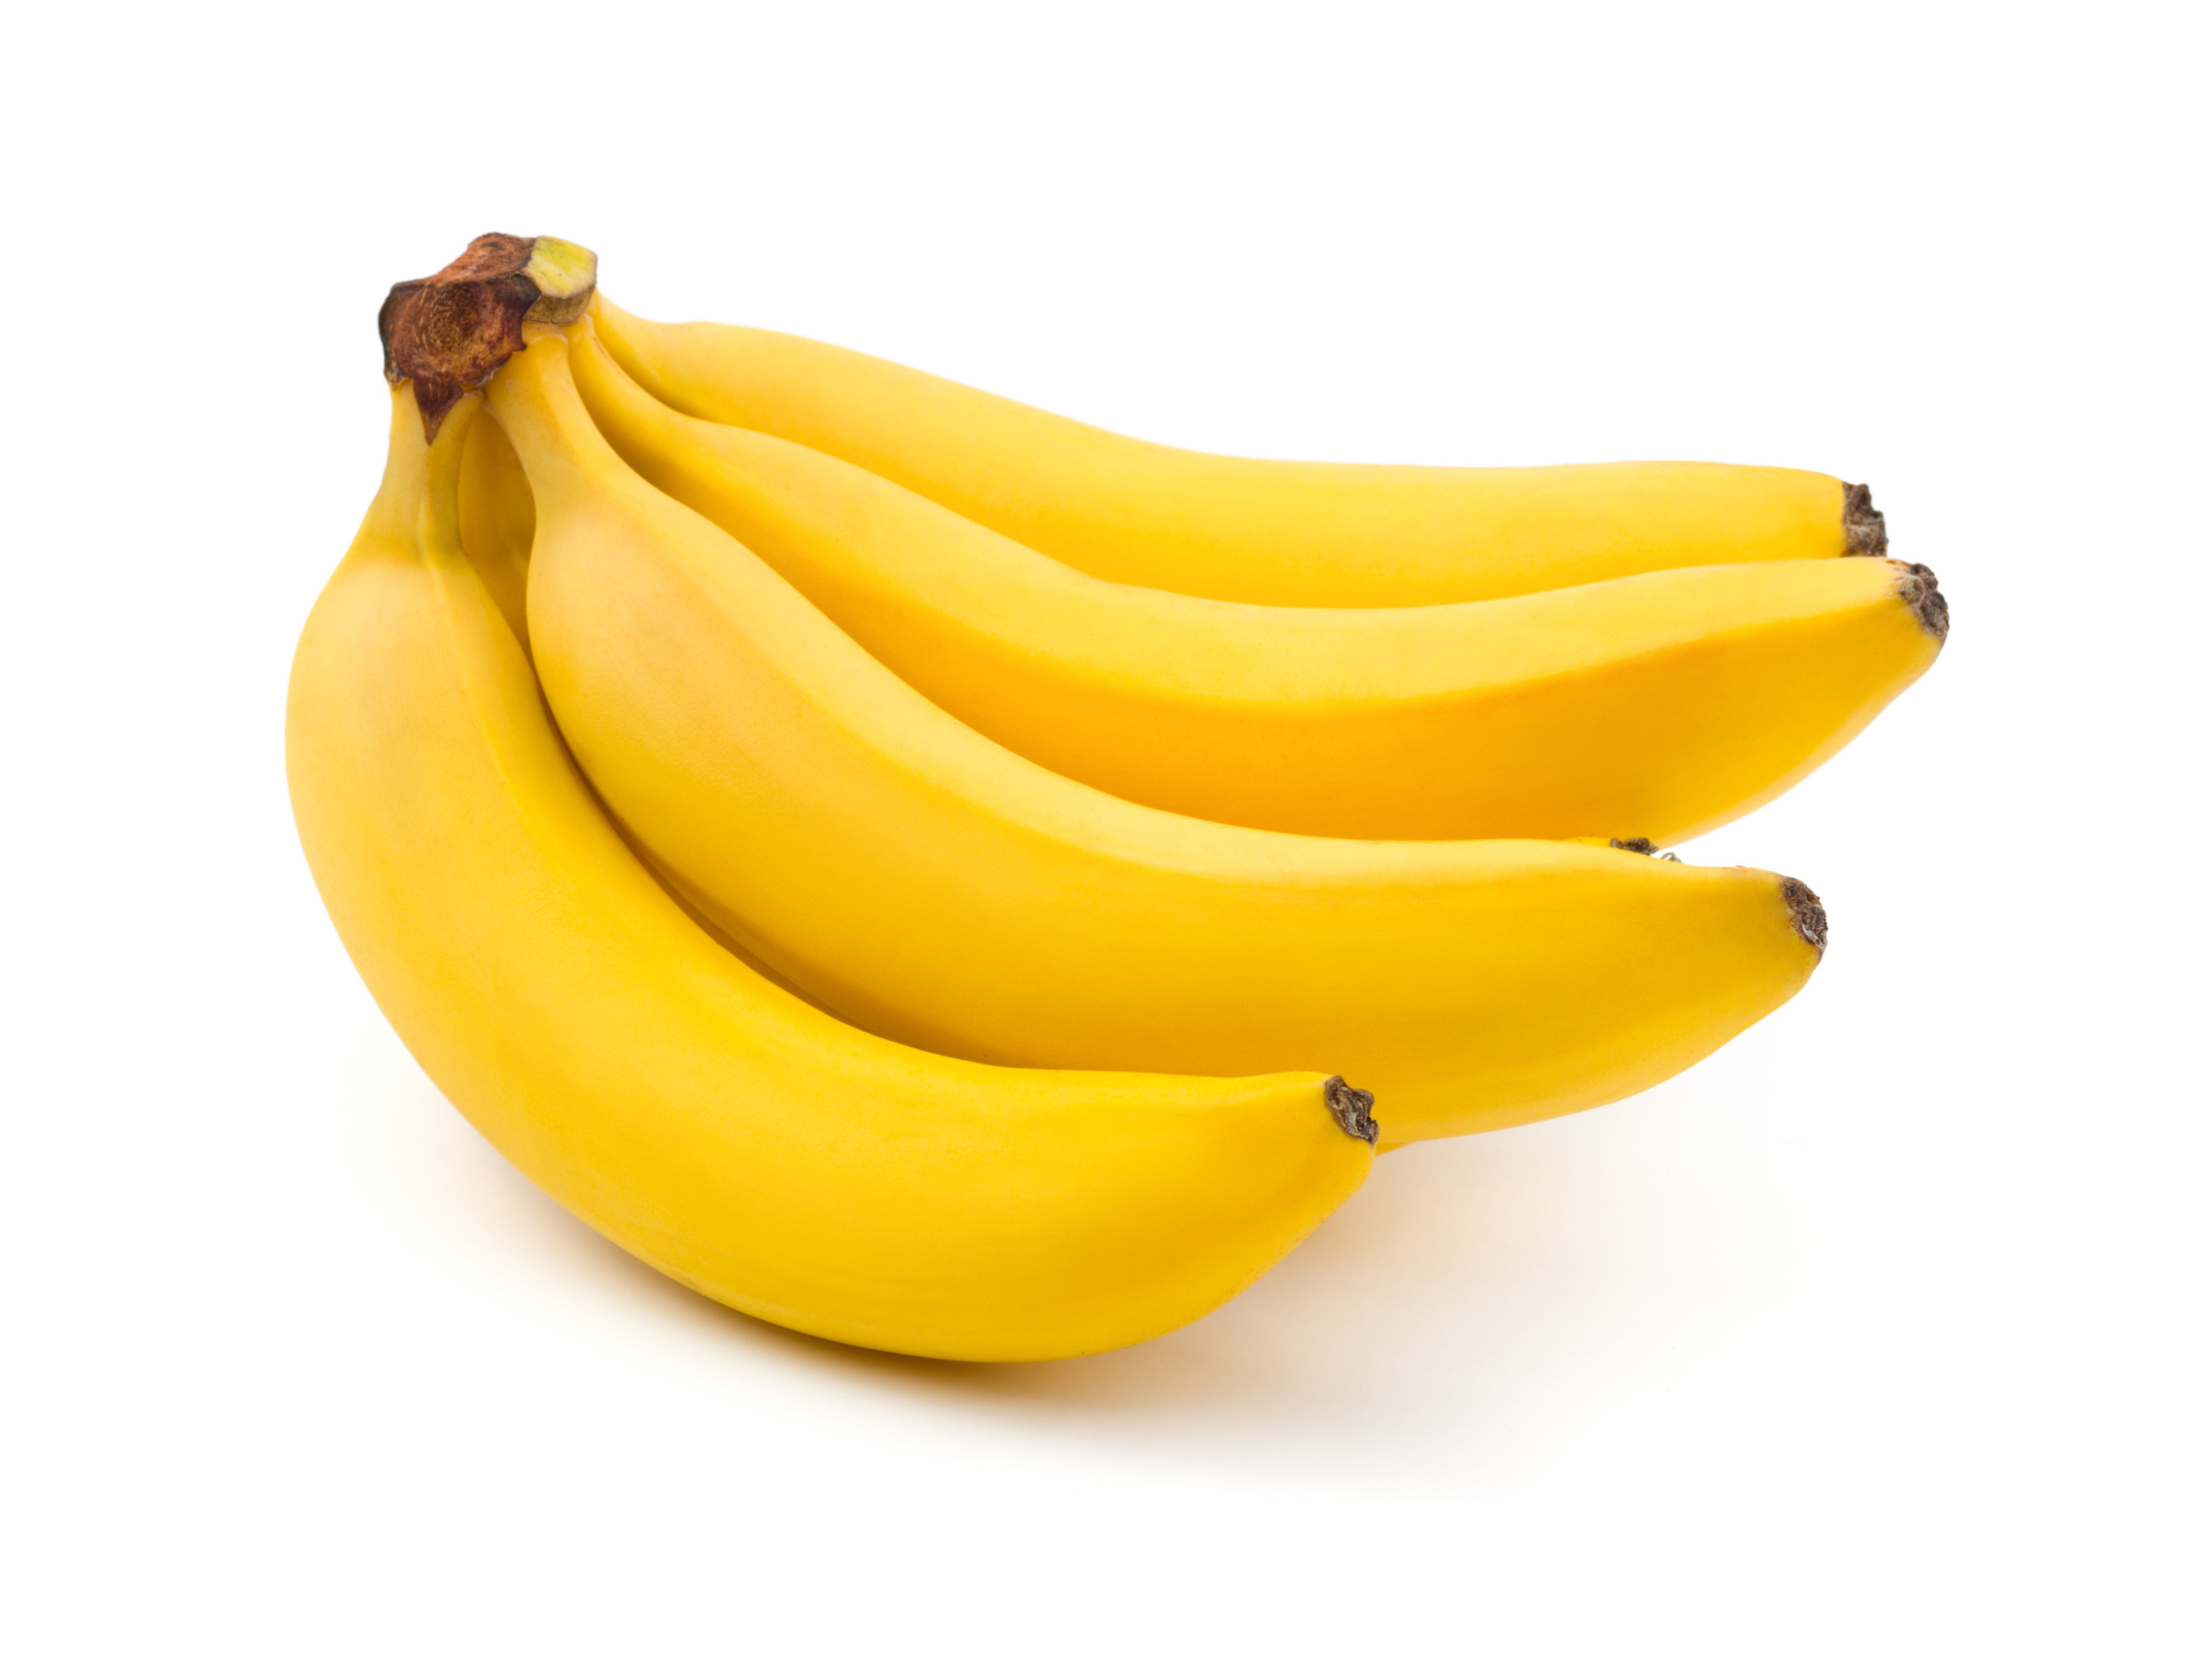 A bunch of bananas? | WordReference Forums